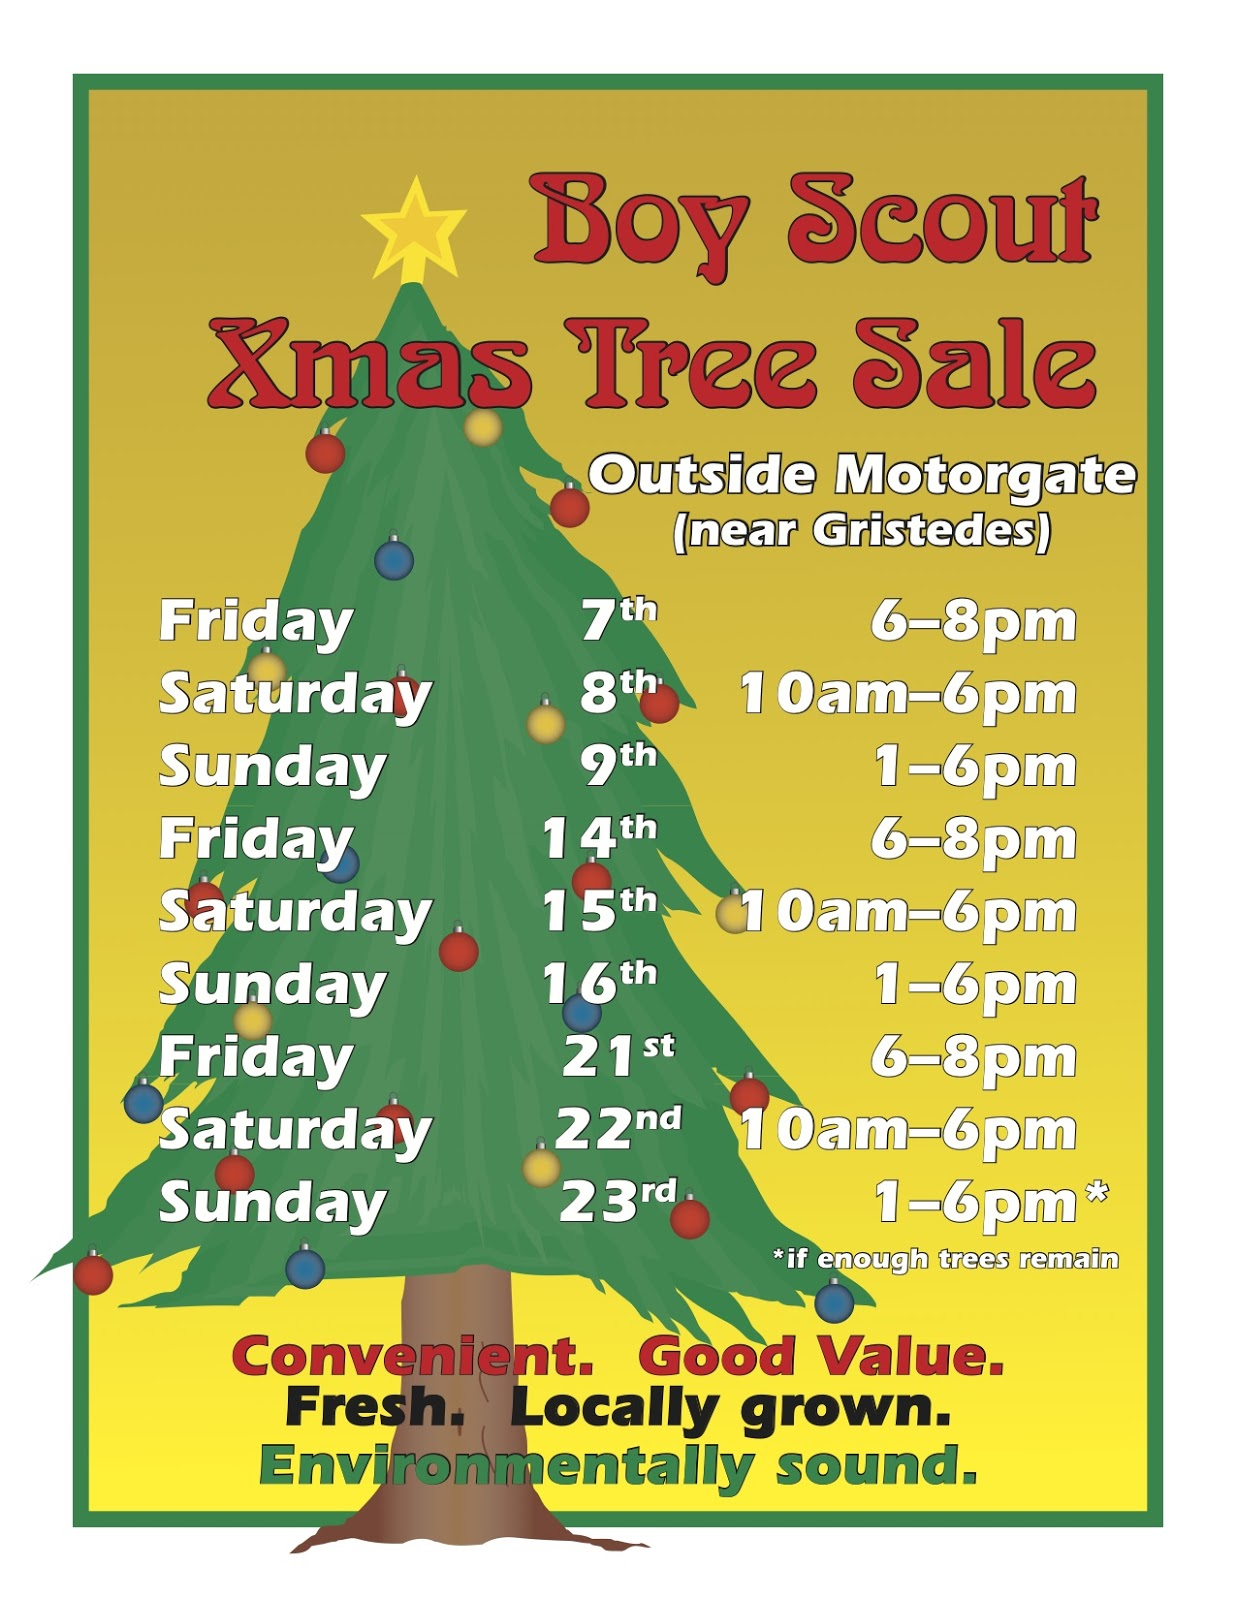 Roosevelt Island Boy Scout Christmas Trees On Sale Starting Tomorrow At  Motorgate Garage   Support Local Boy Scout Troop Or Not Because Of National  ...